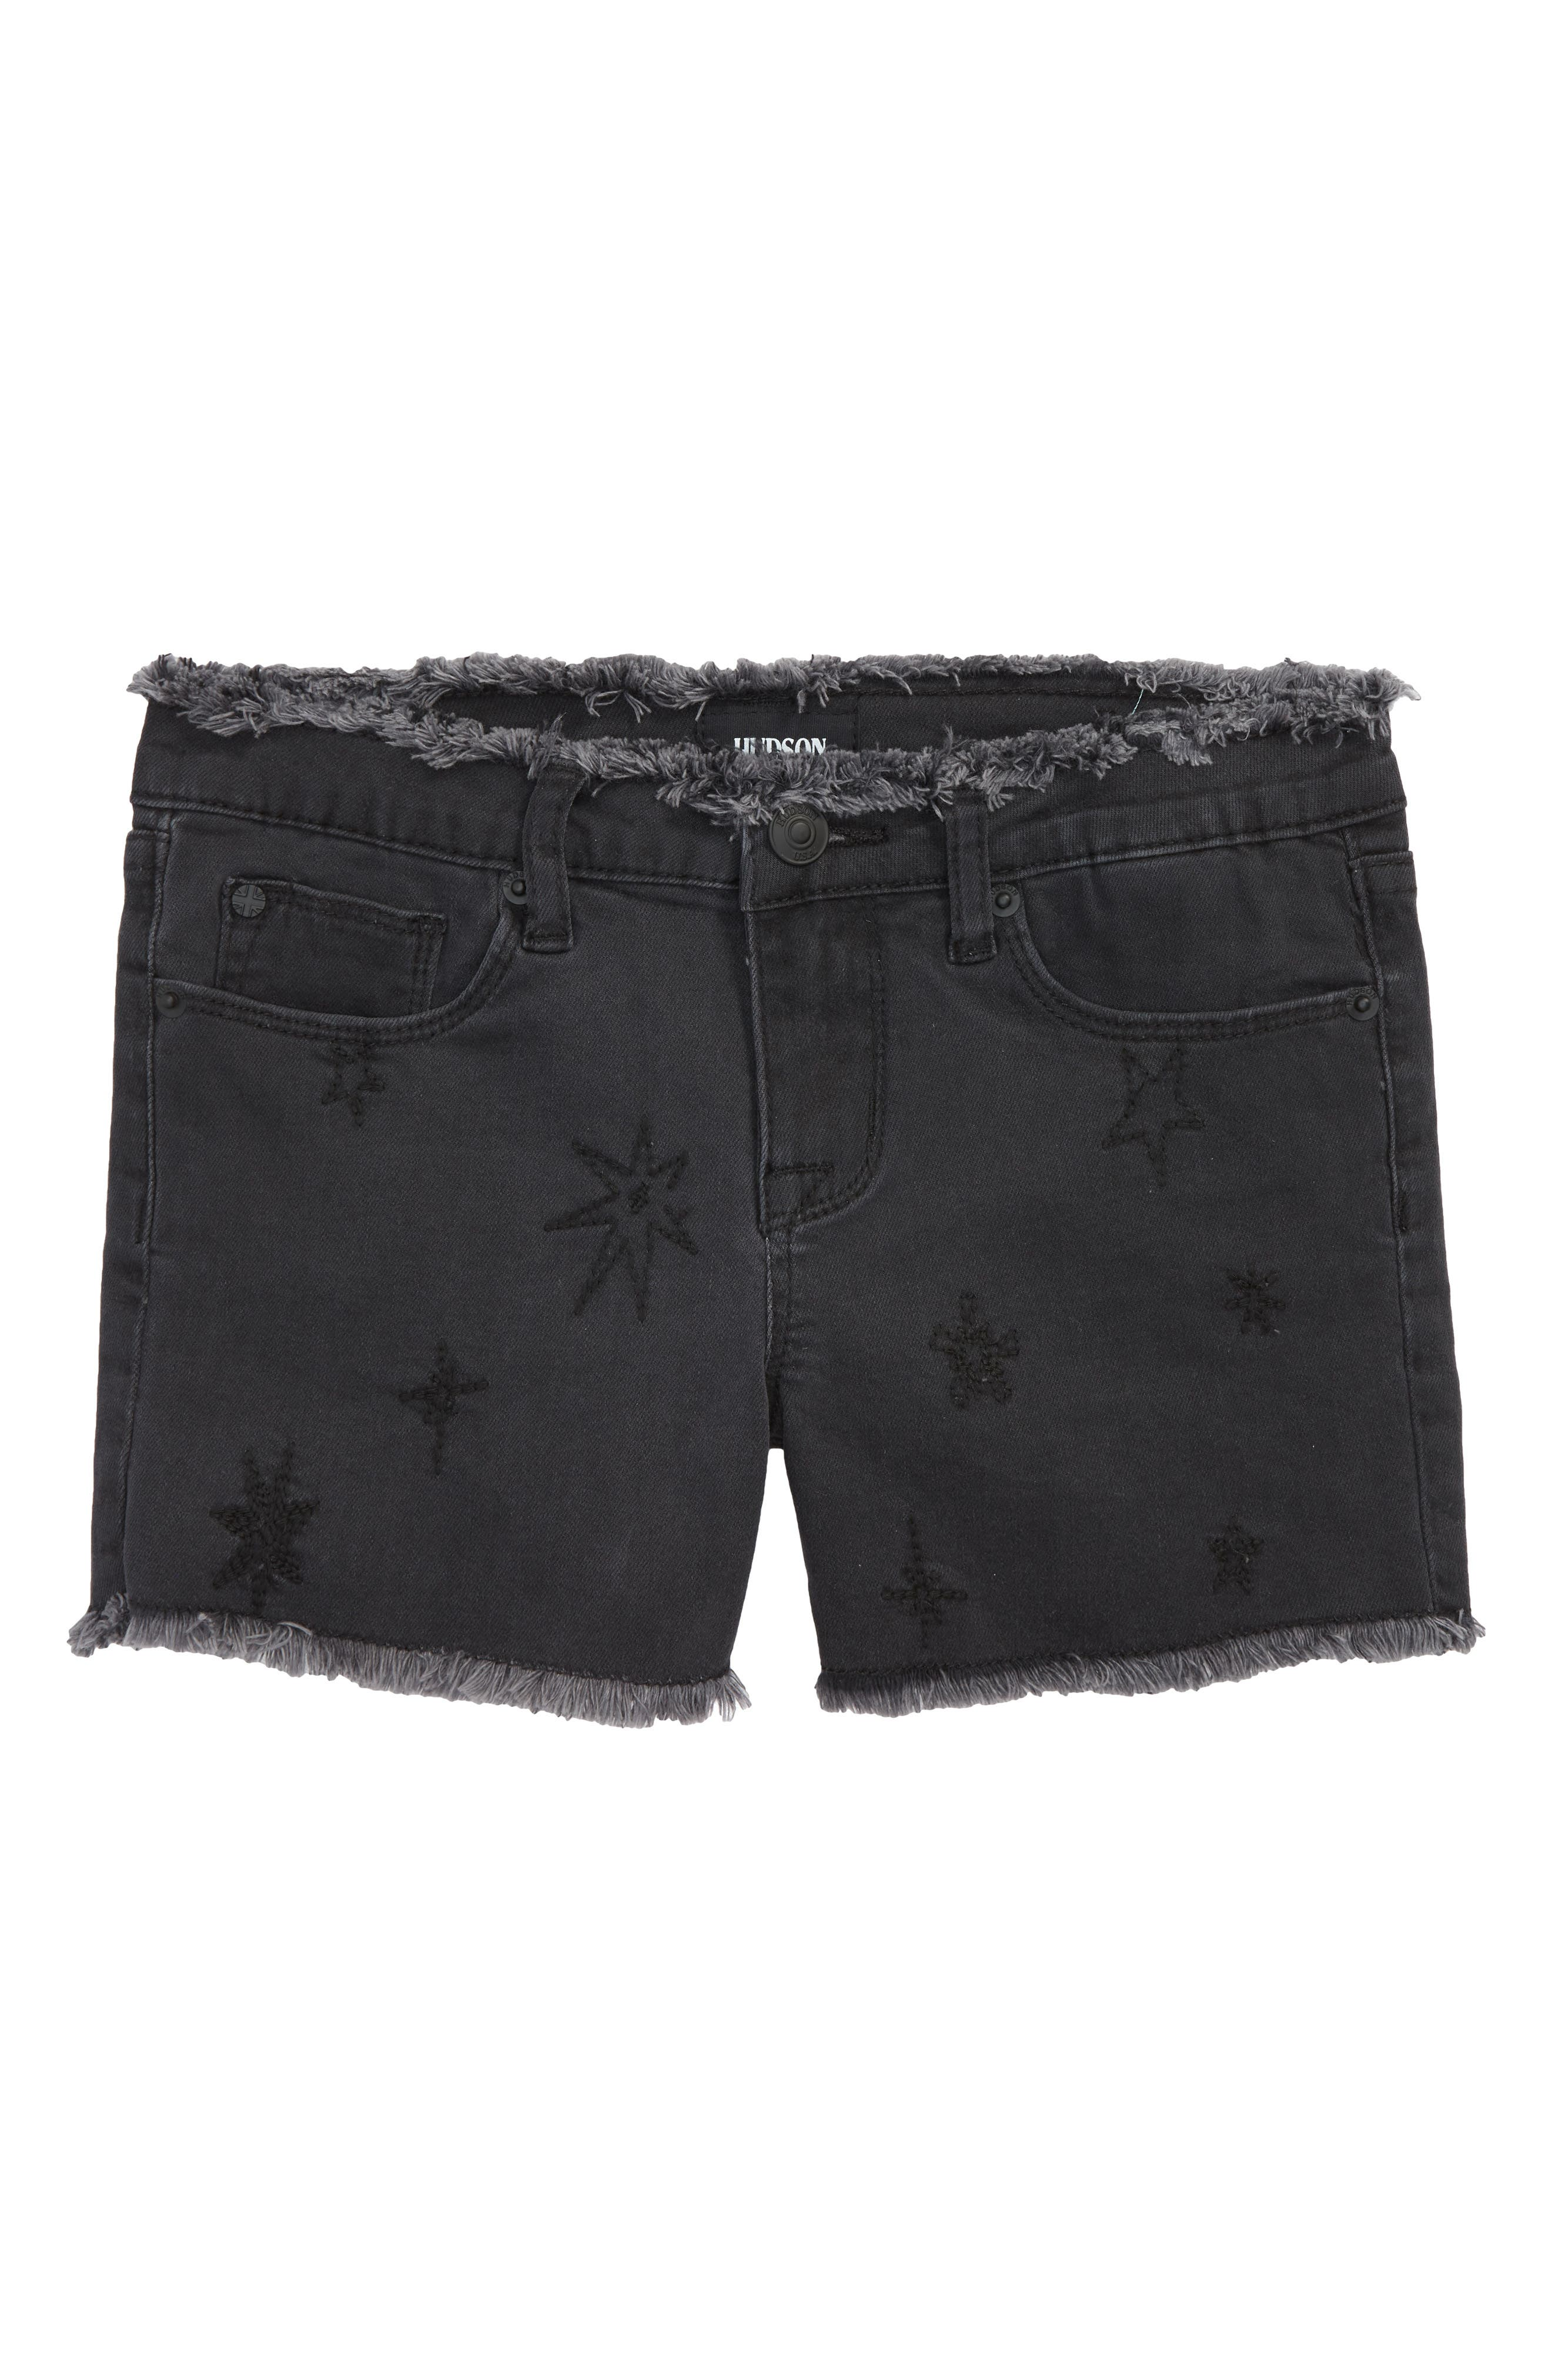 Starry Night Embroidered Cutoff Stretch Twill Shorts,                             Main thumbnail 1, color,                             Nhs-Night Sky